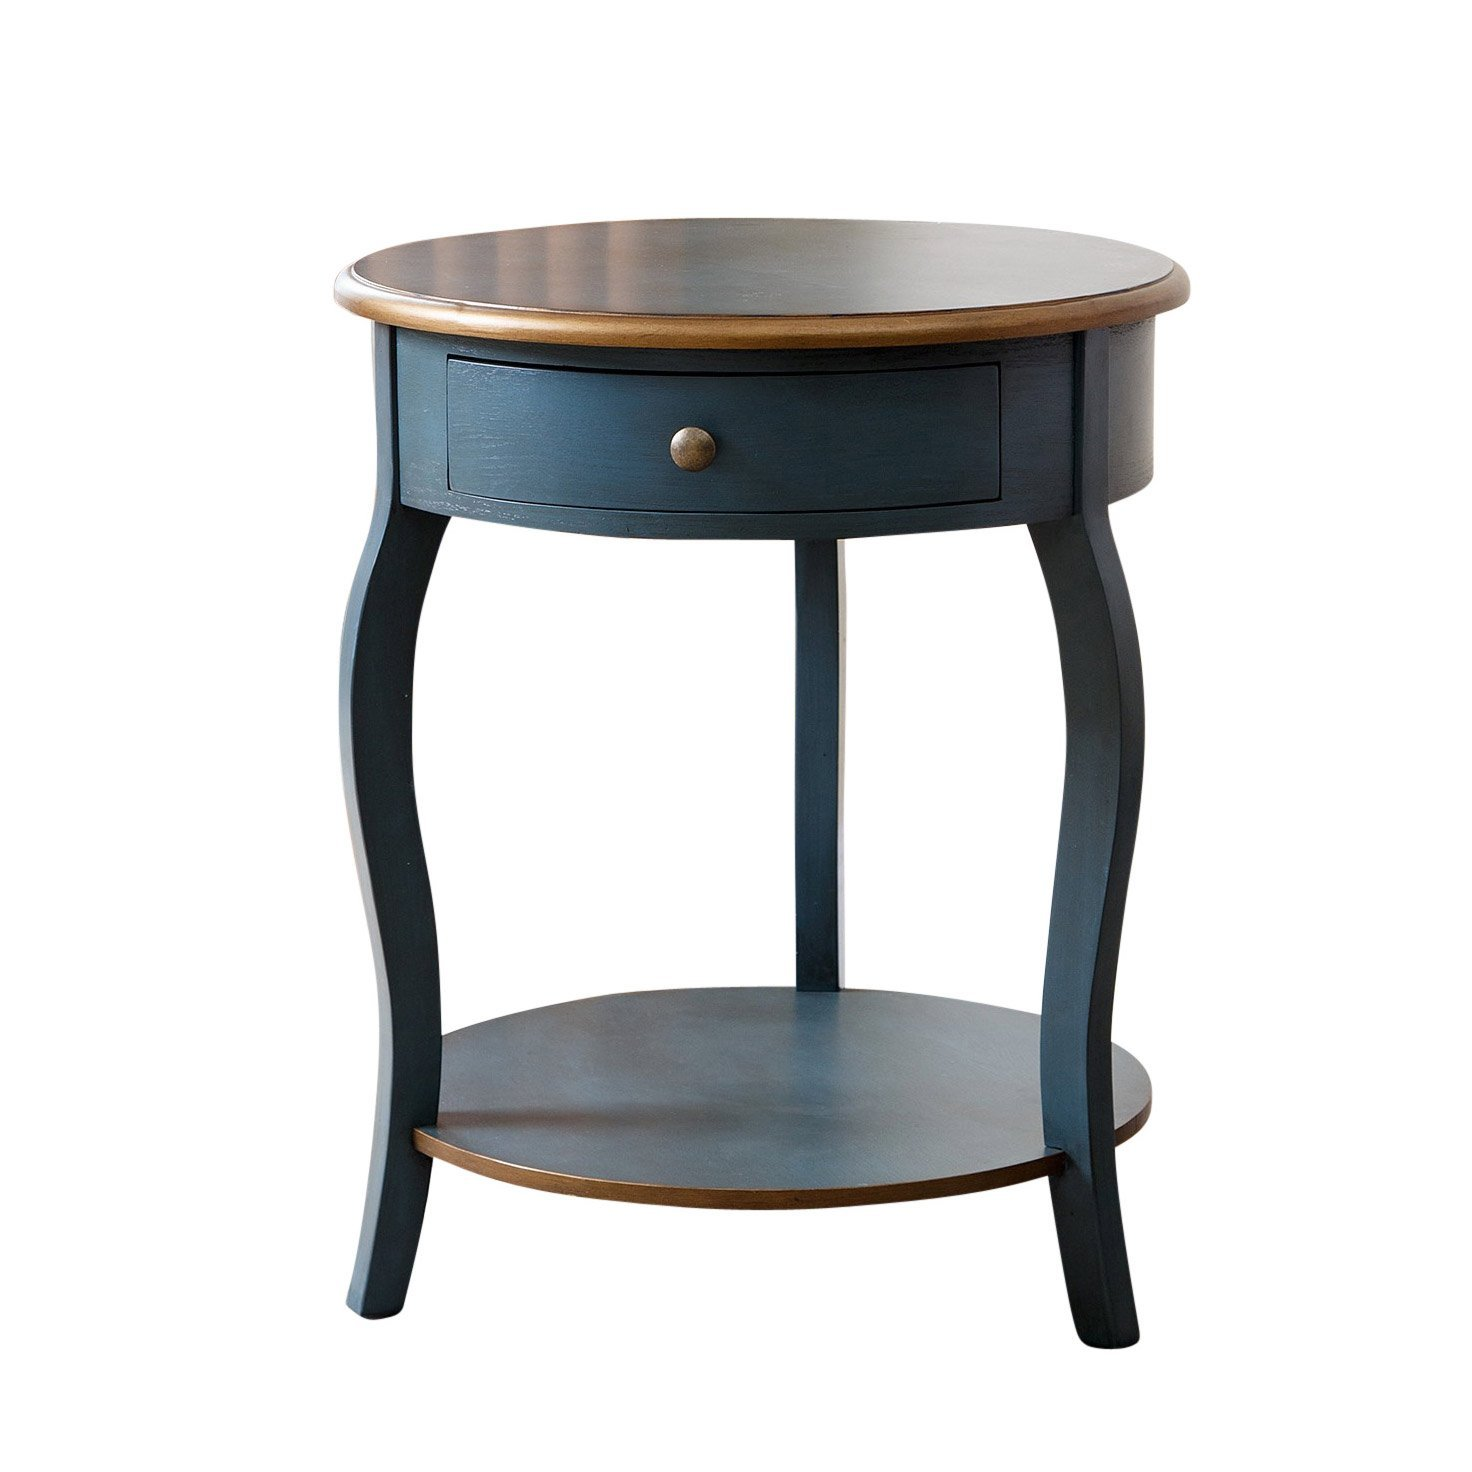 Abbyson Julianne 1 Drawer Round Wood End Table, Rustic Teal & Gold